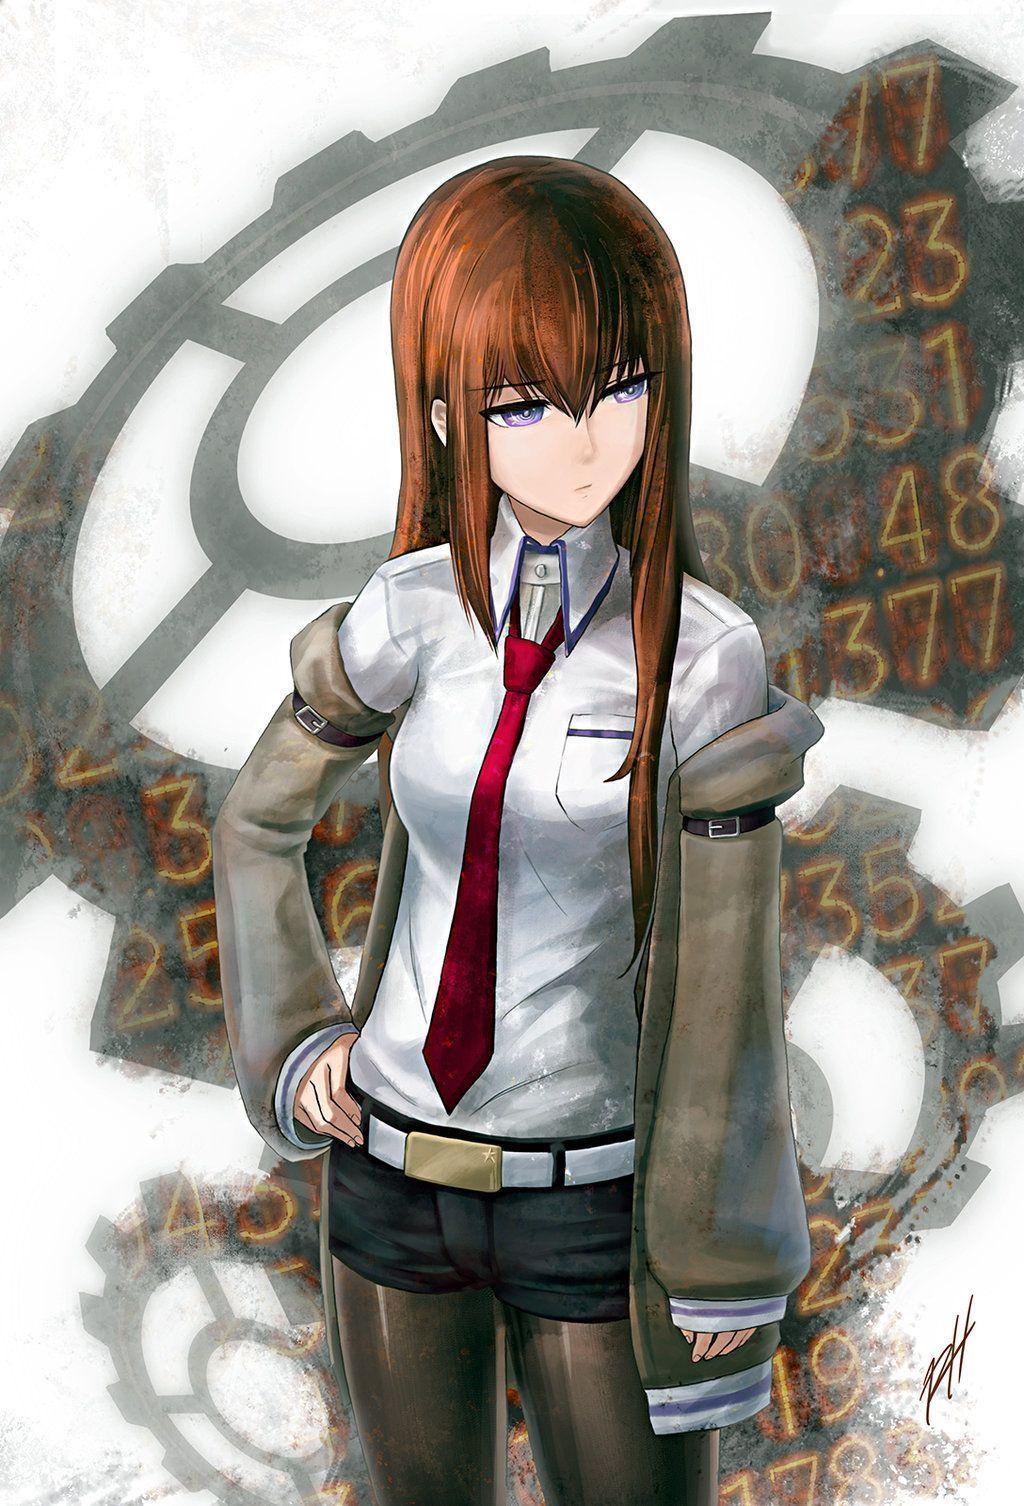 Makise Kurisu Wallpapers 4k (Ultra HD) for Android - APK ...